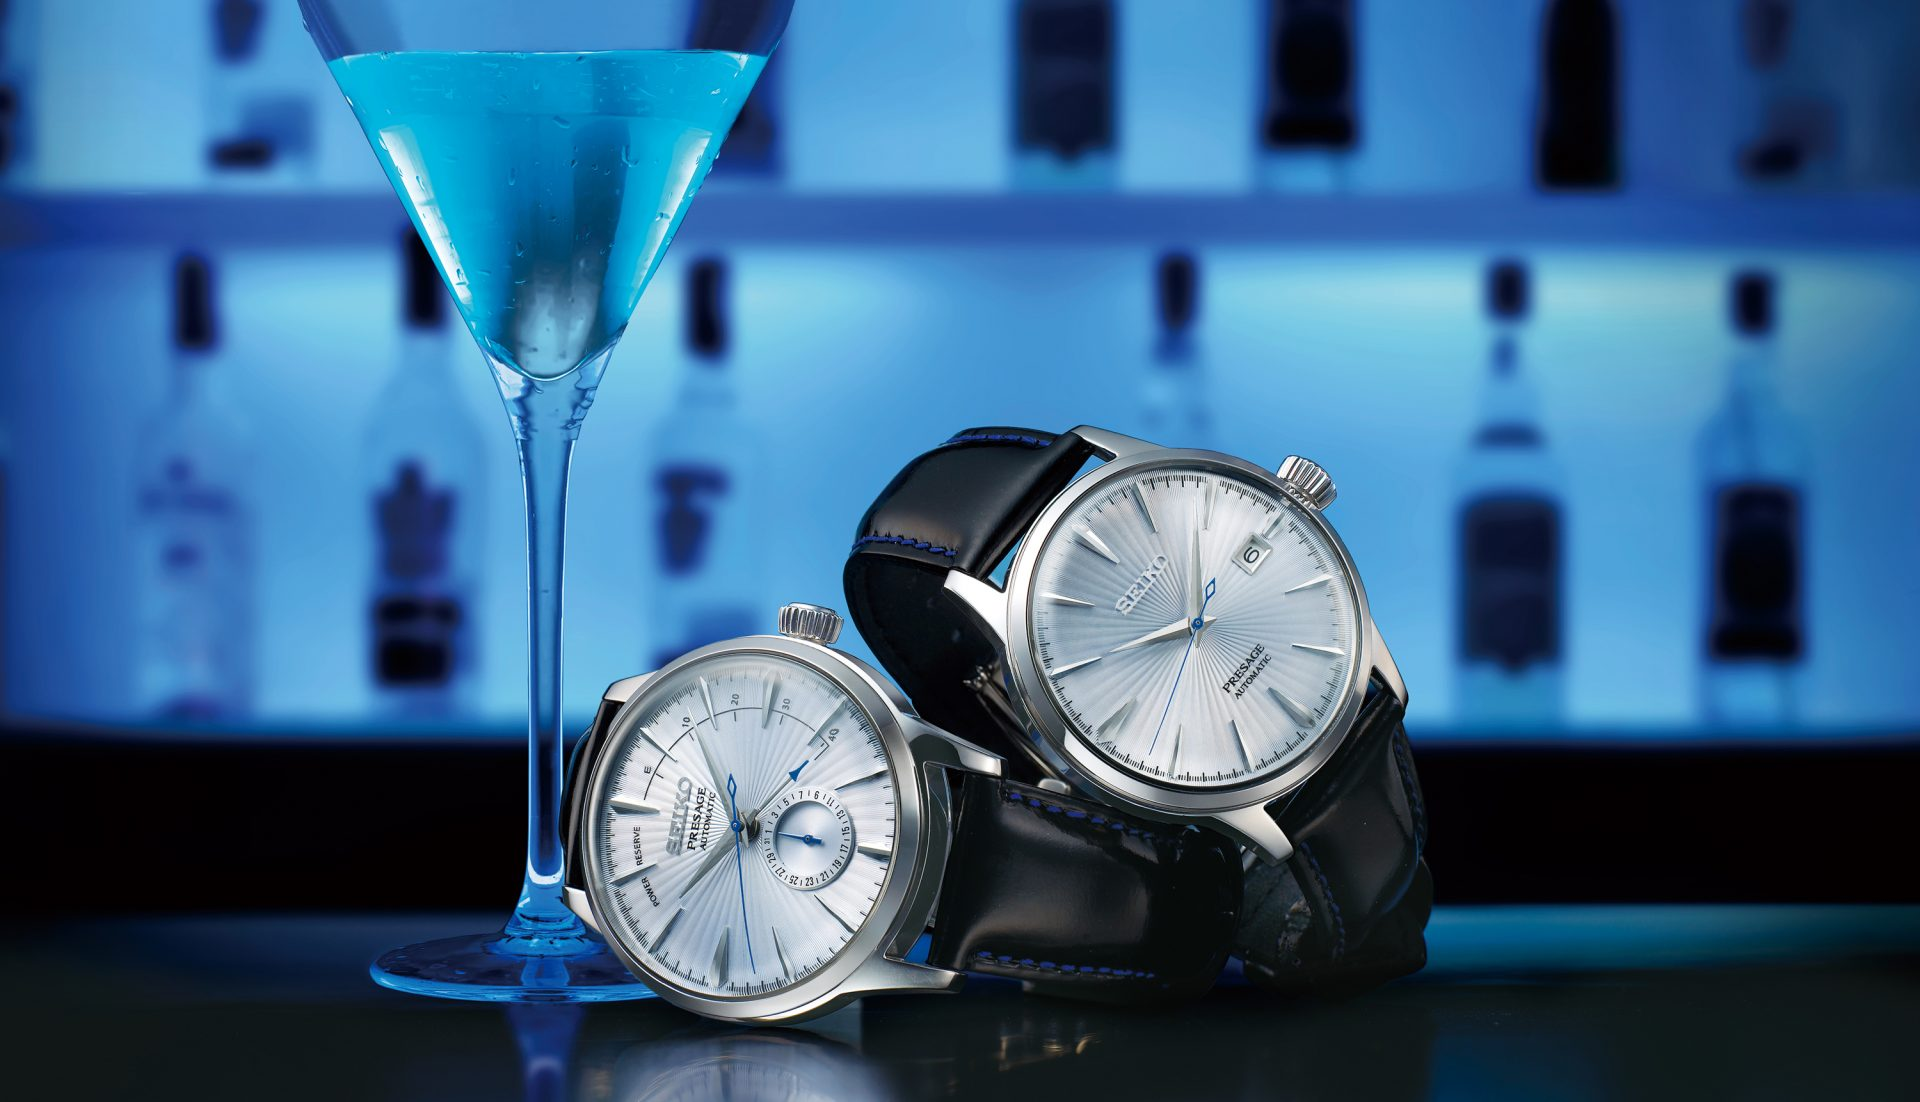 Seiko's newest Presage watches are perfect for cocktail hour